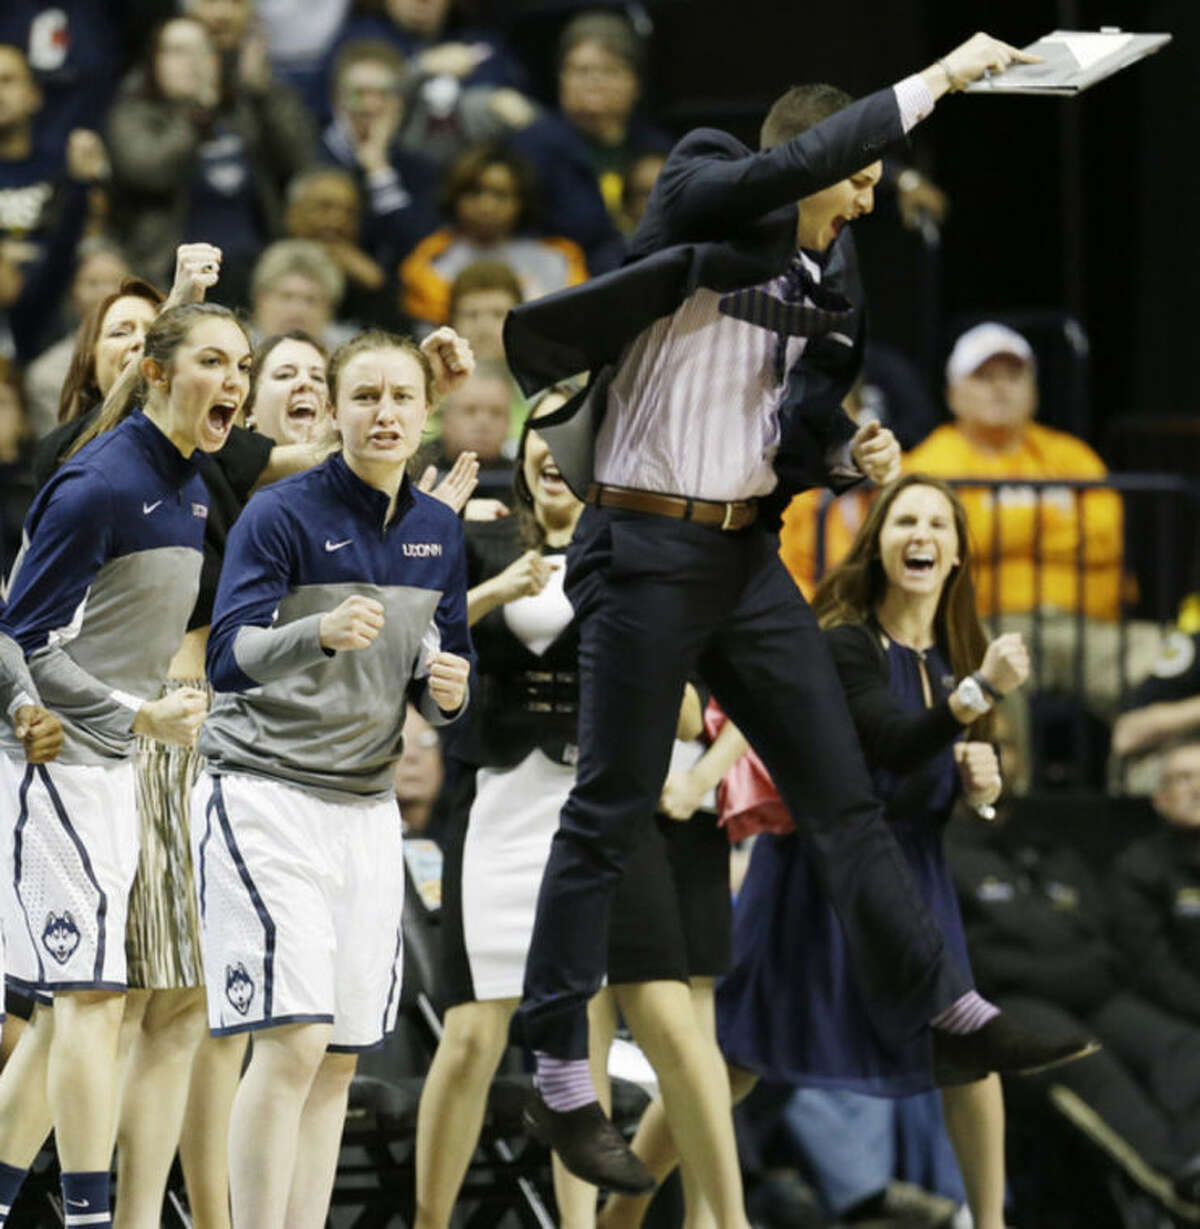 The Connecticut bench celebrates a basket against Stanford during the first half of the semifinal game in the Final Four of the NCAA women's college basketball tournament, Sunday, April 6, 2014, in Nashville, Tenn. (AP Photo/Mark Humphrey)